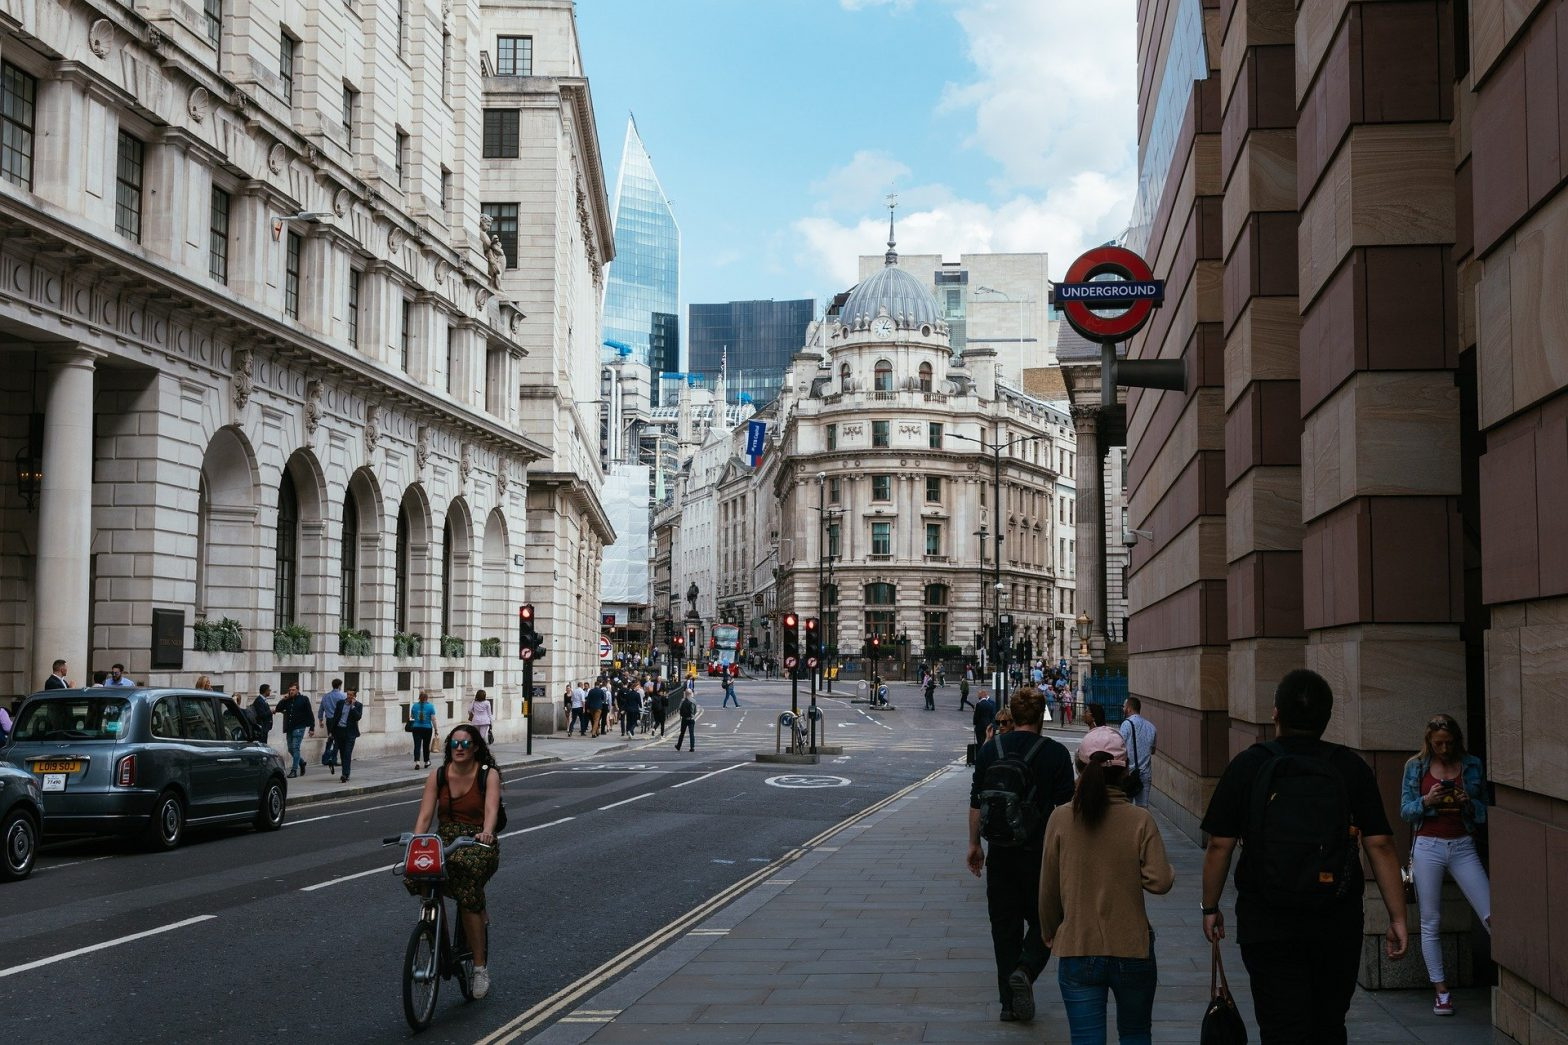 View from City of London Street of Bank of England